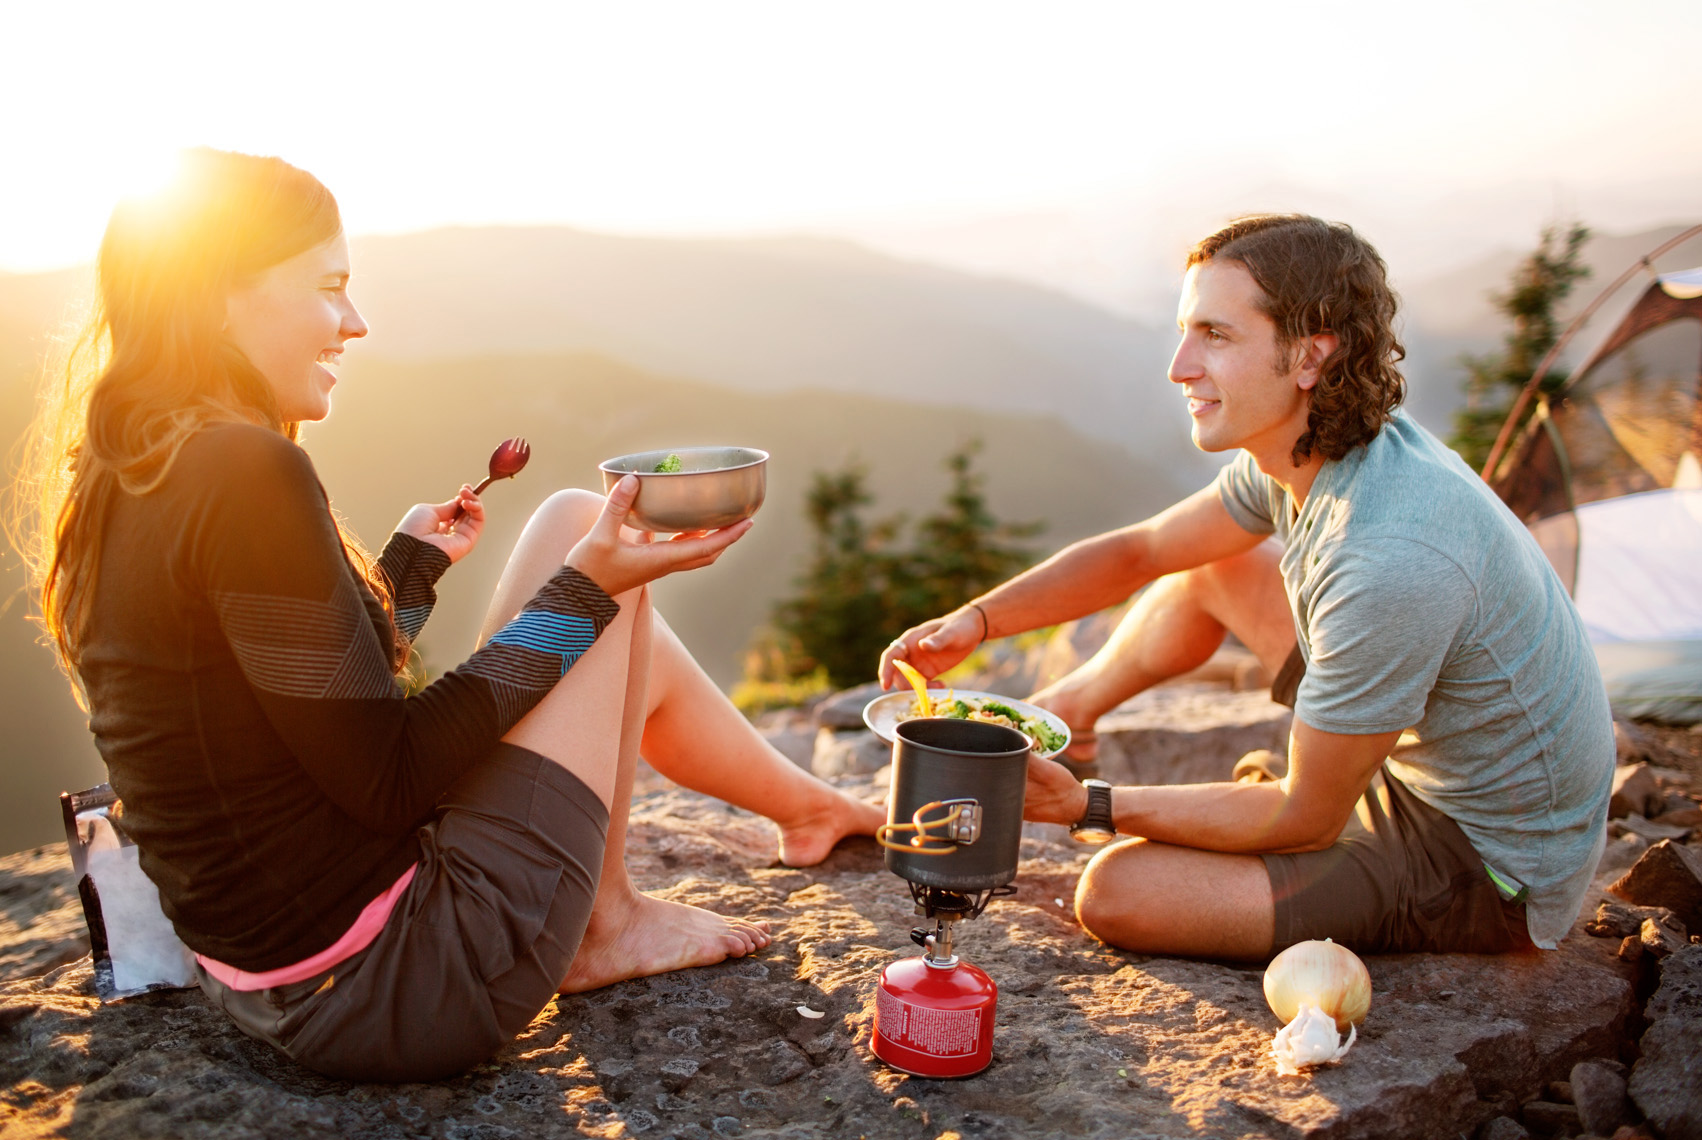 Couple making dinner on backpacking trip at sunset